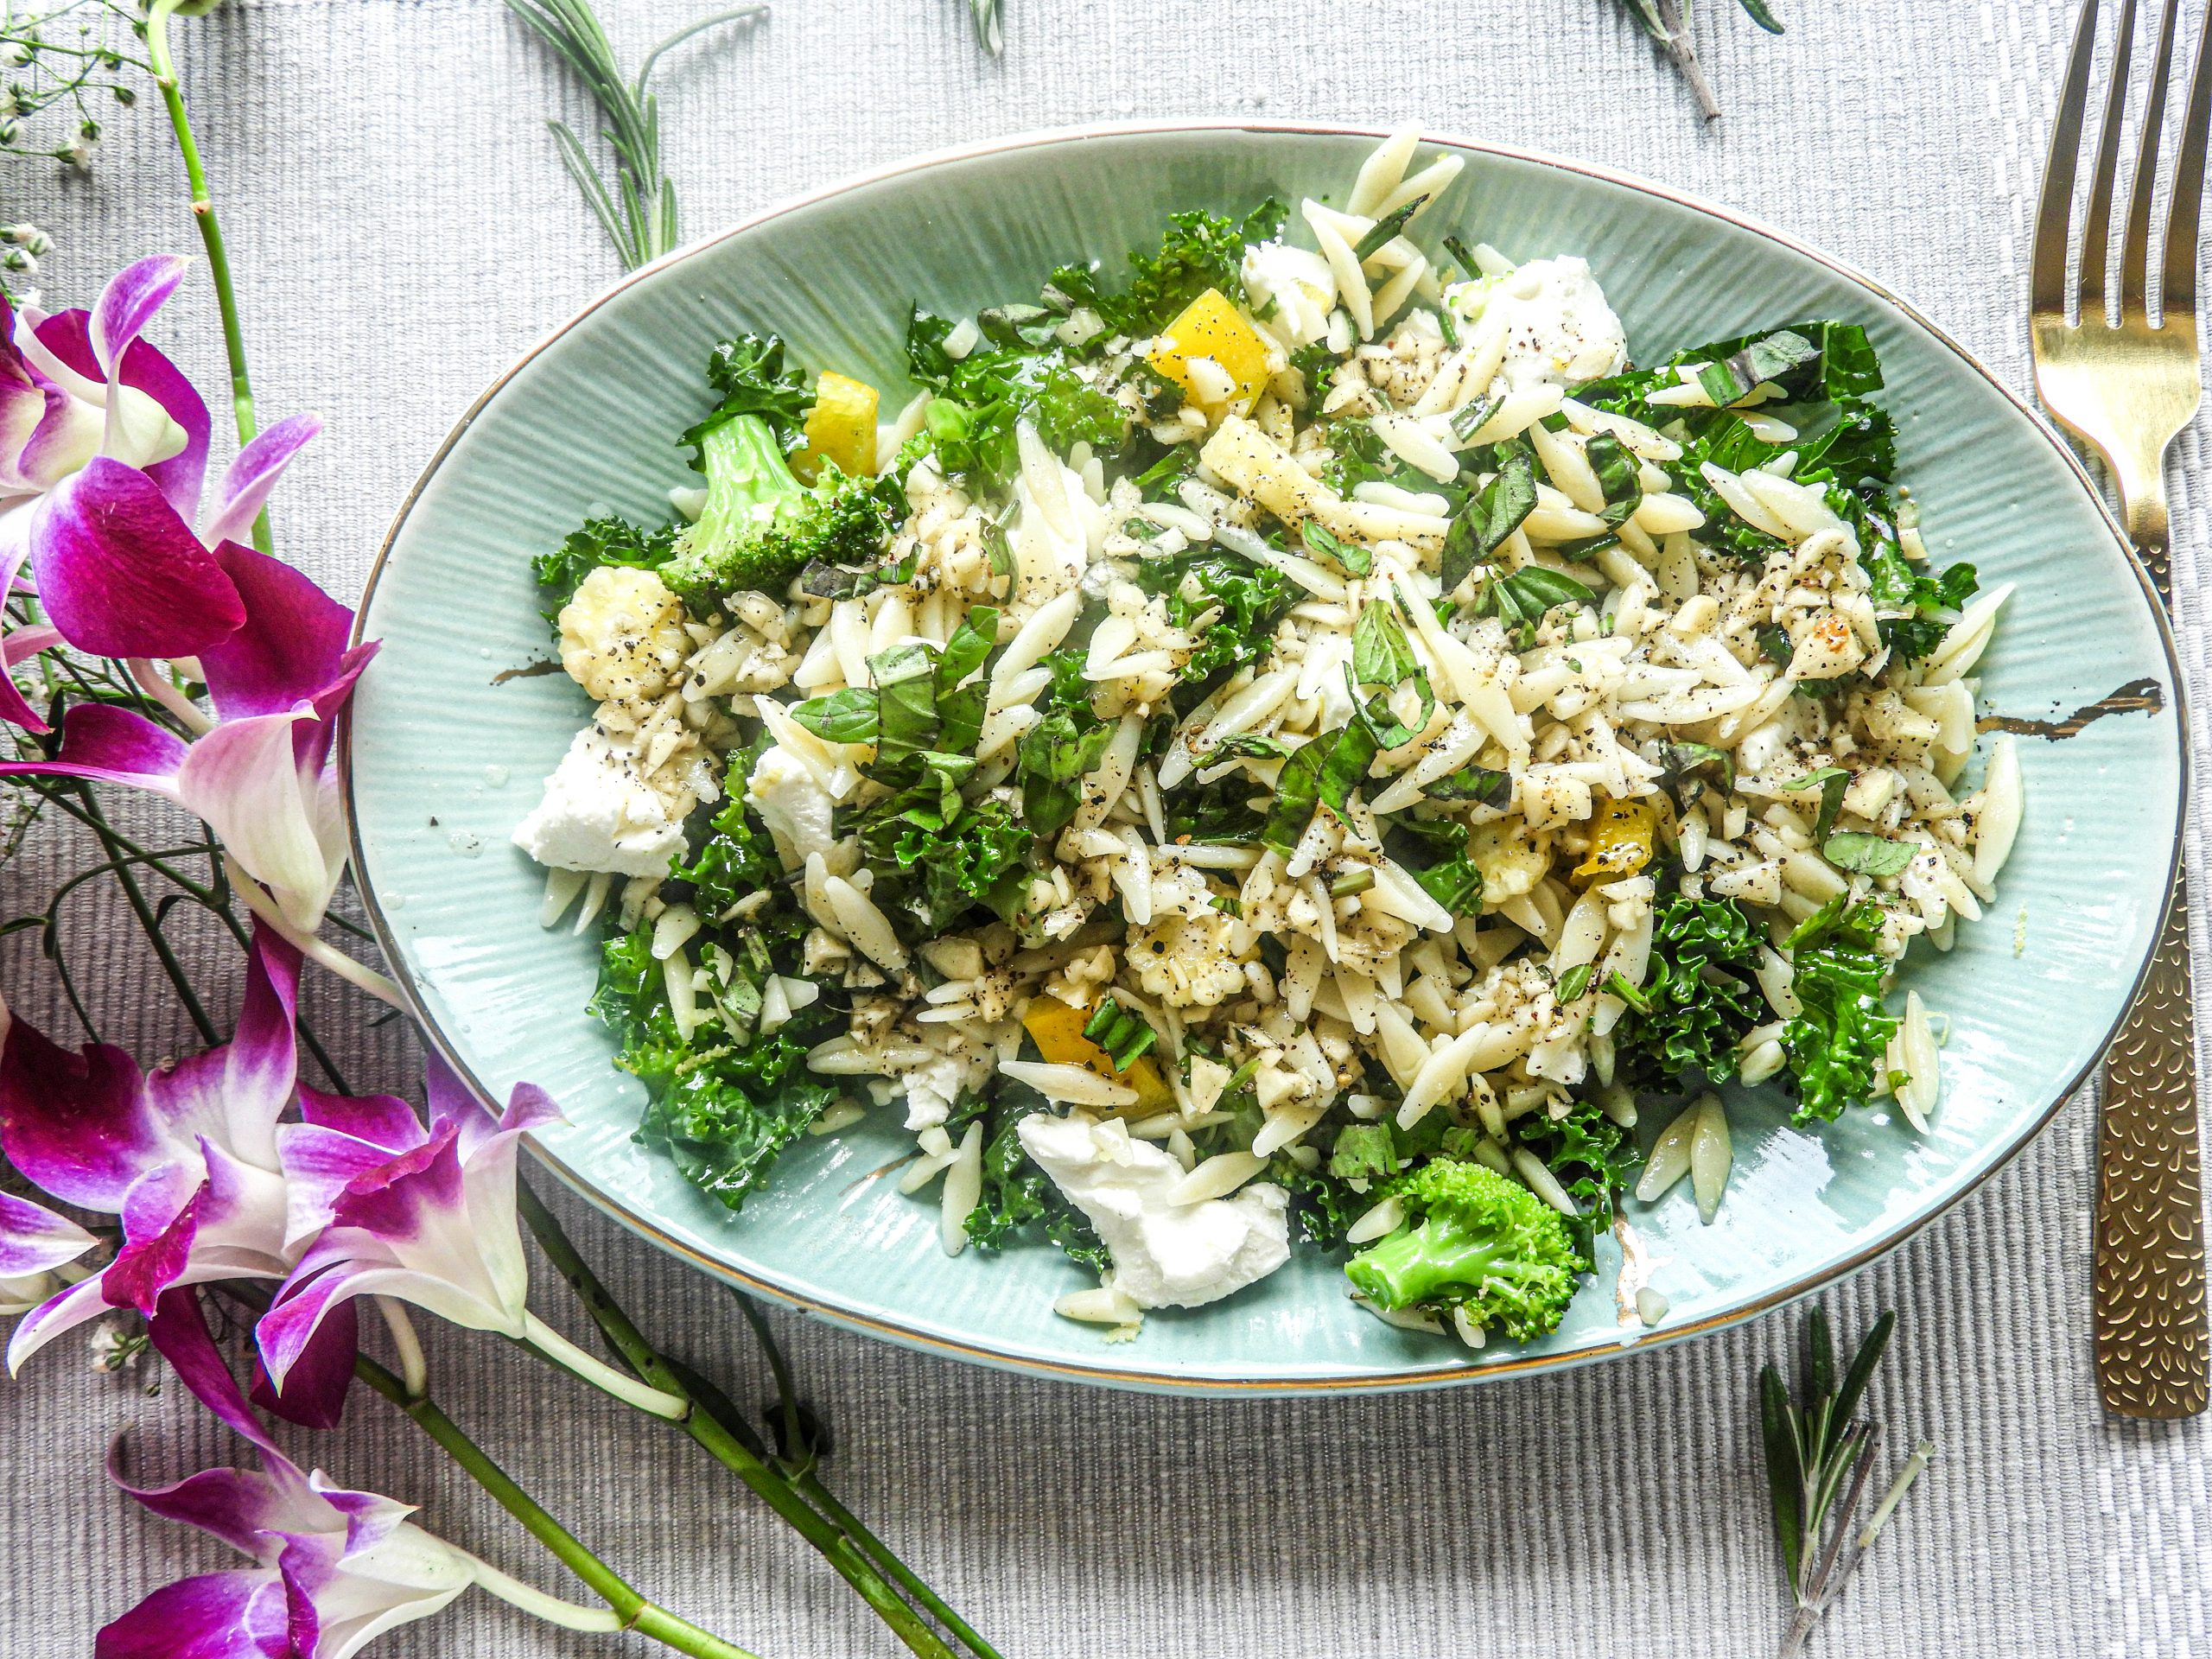 Orzo Pasta Salad with Goat Cheese - Italian Cuisine at Kitchen by Nidhi